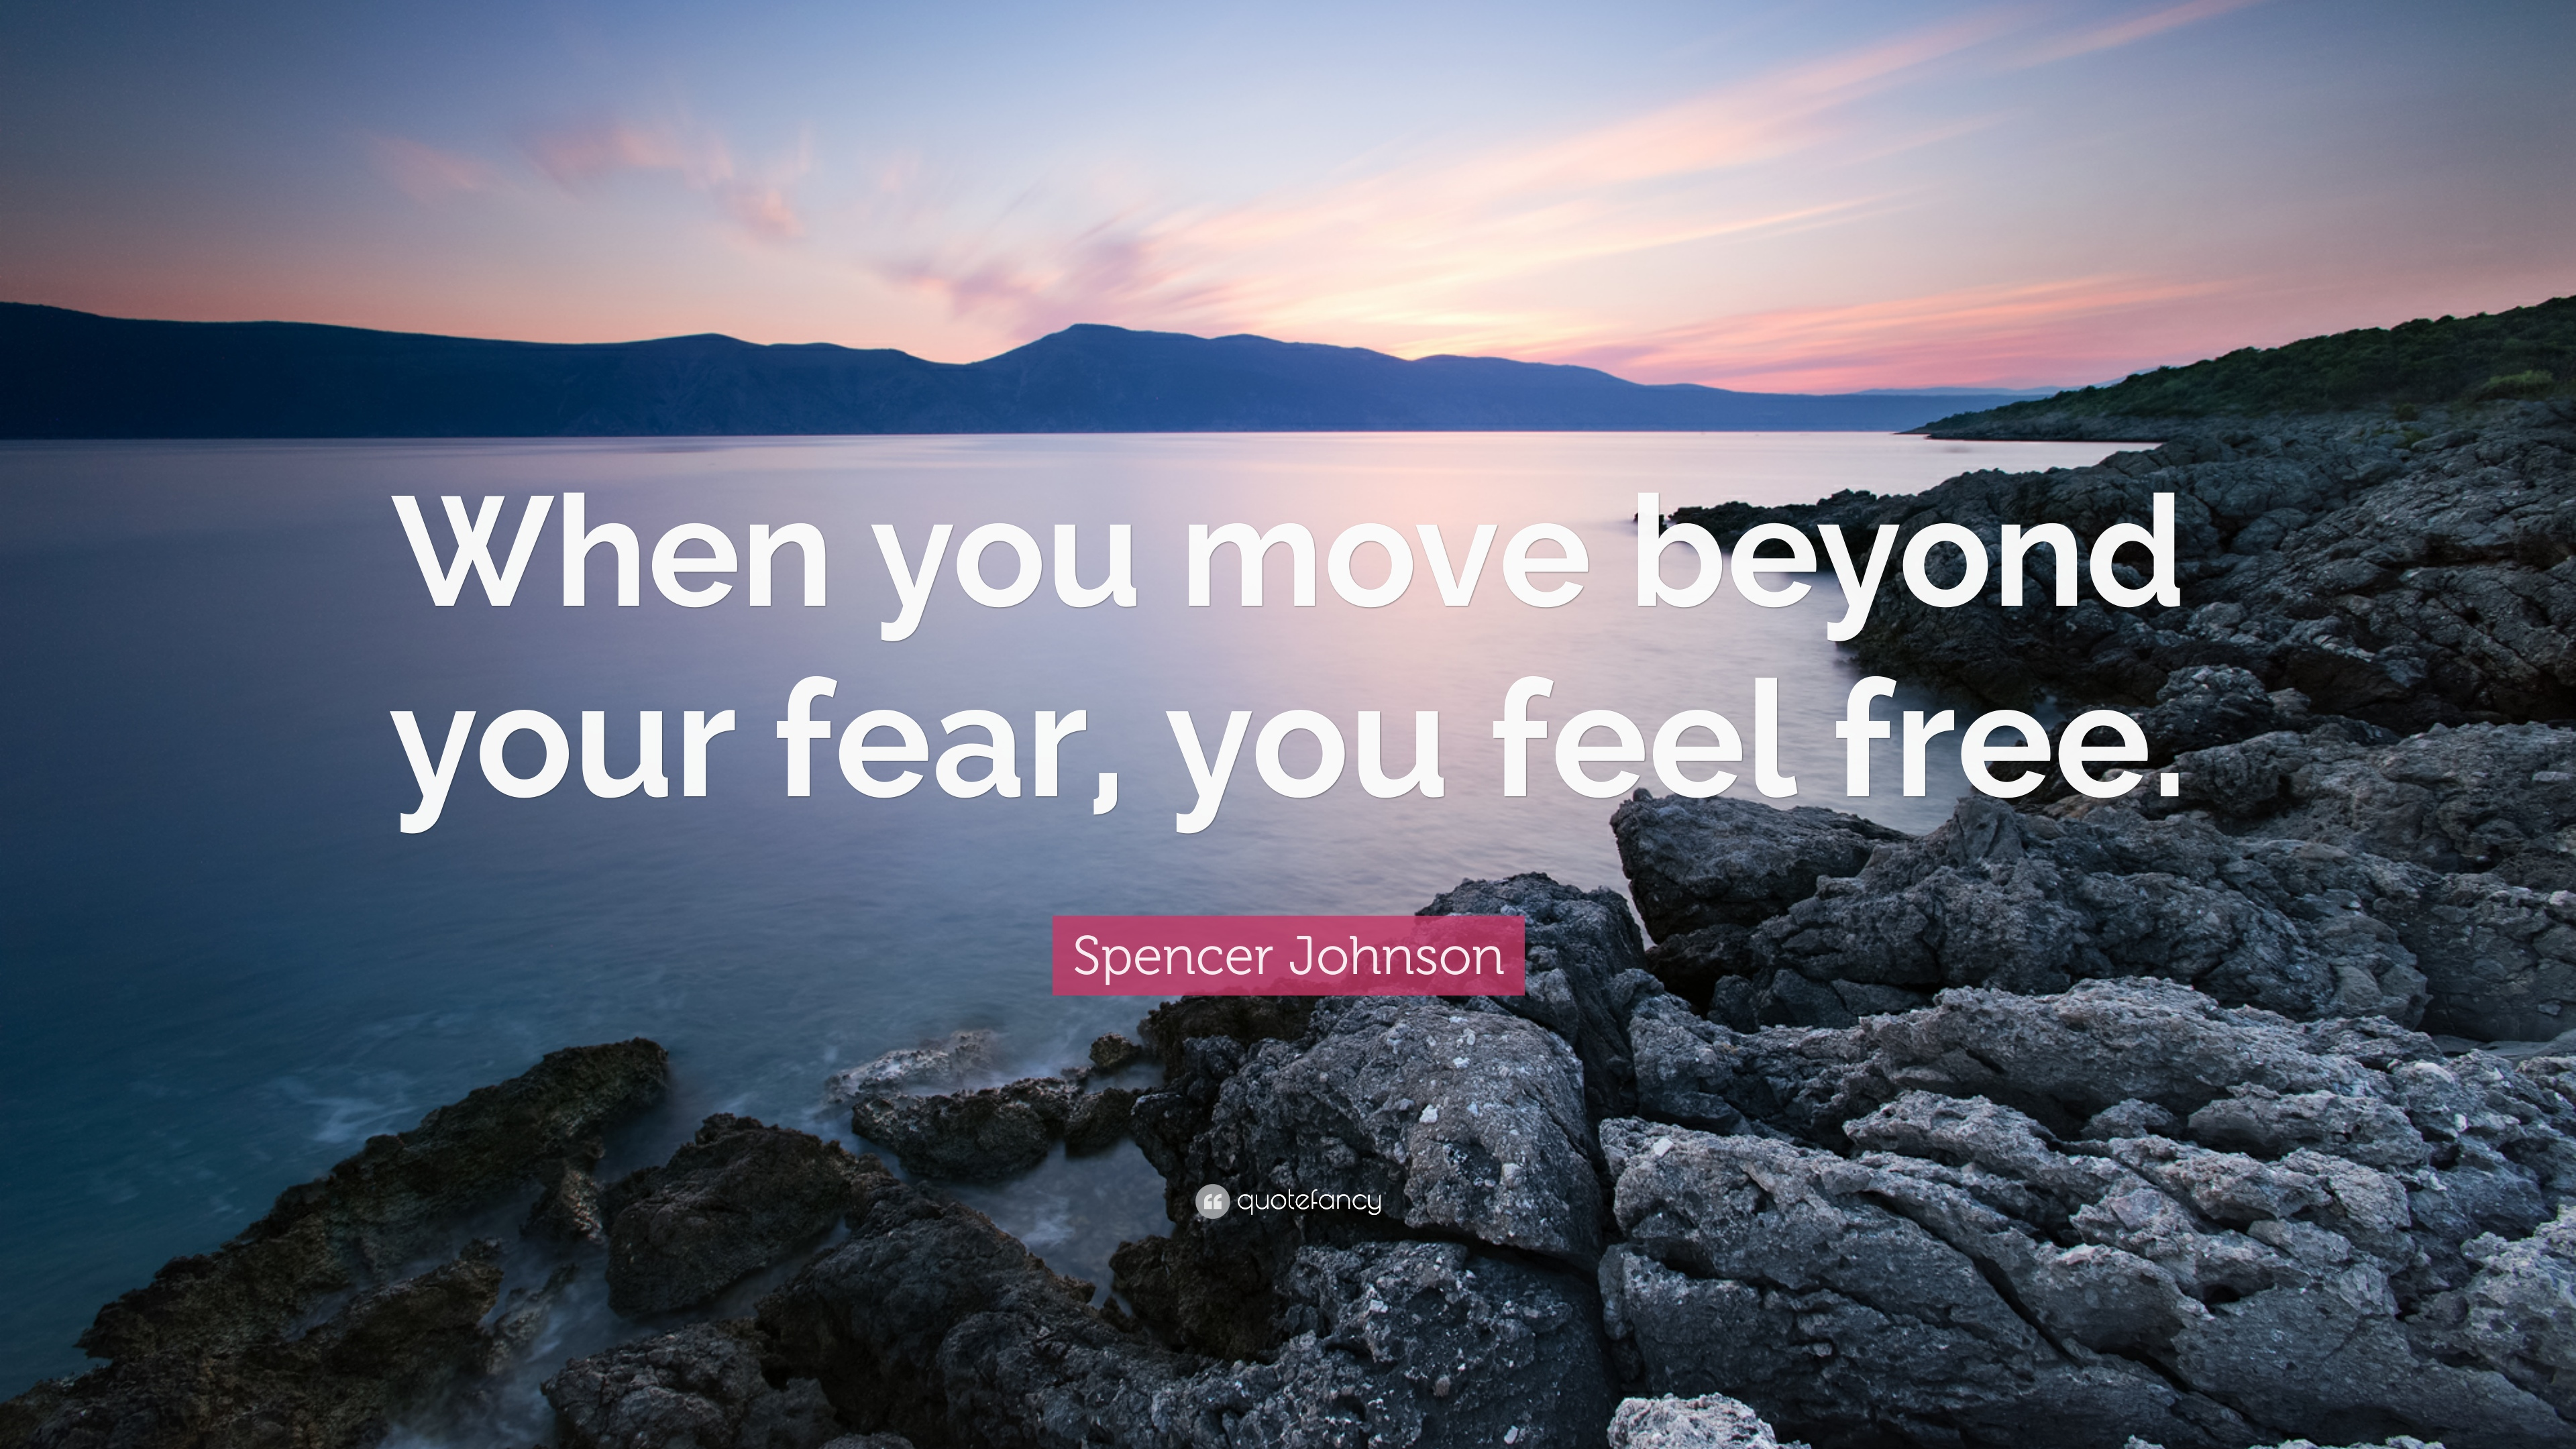 Spencer Johnson Quote When You Move Beyond Your Fear Feel Free